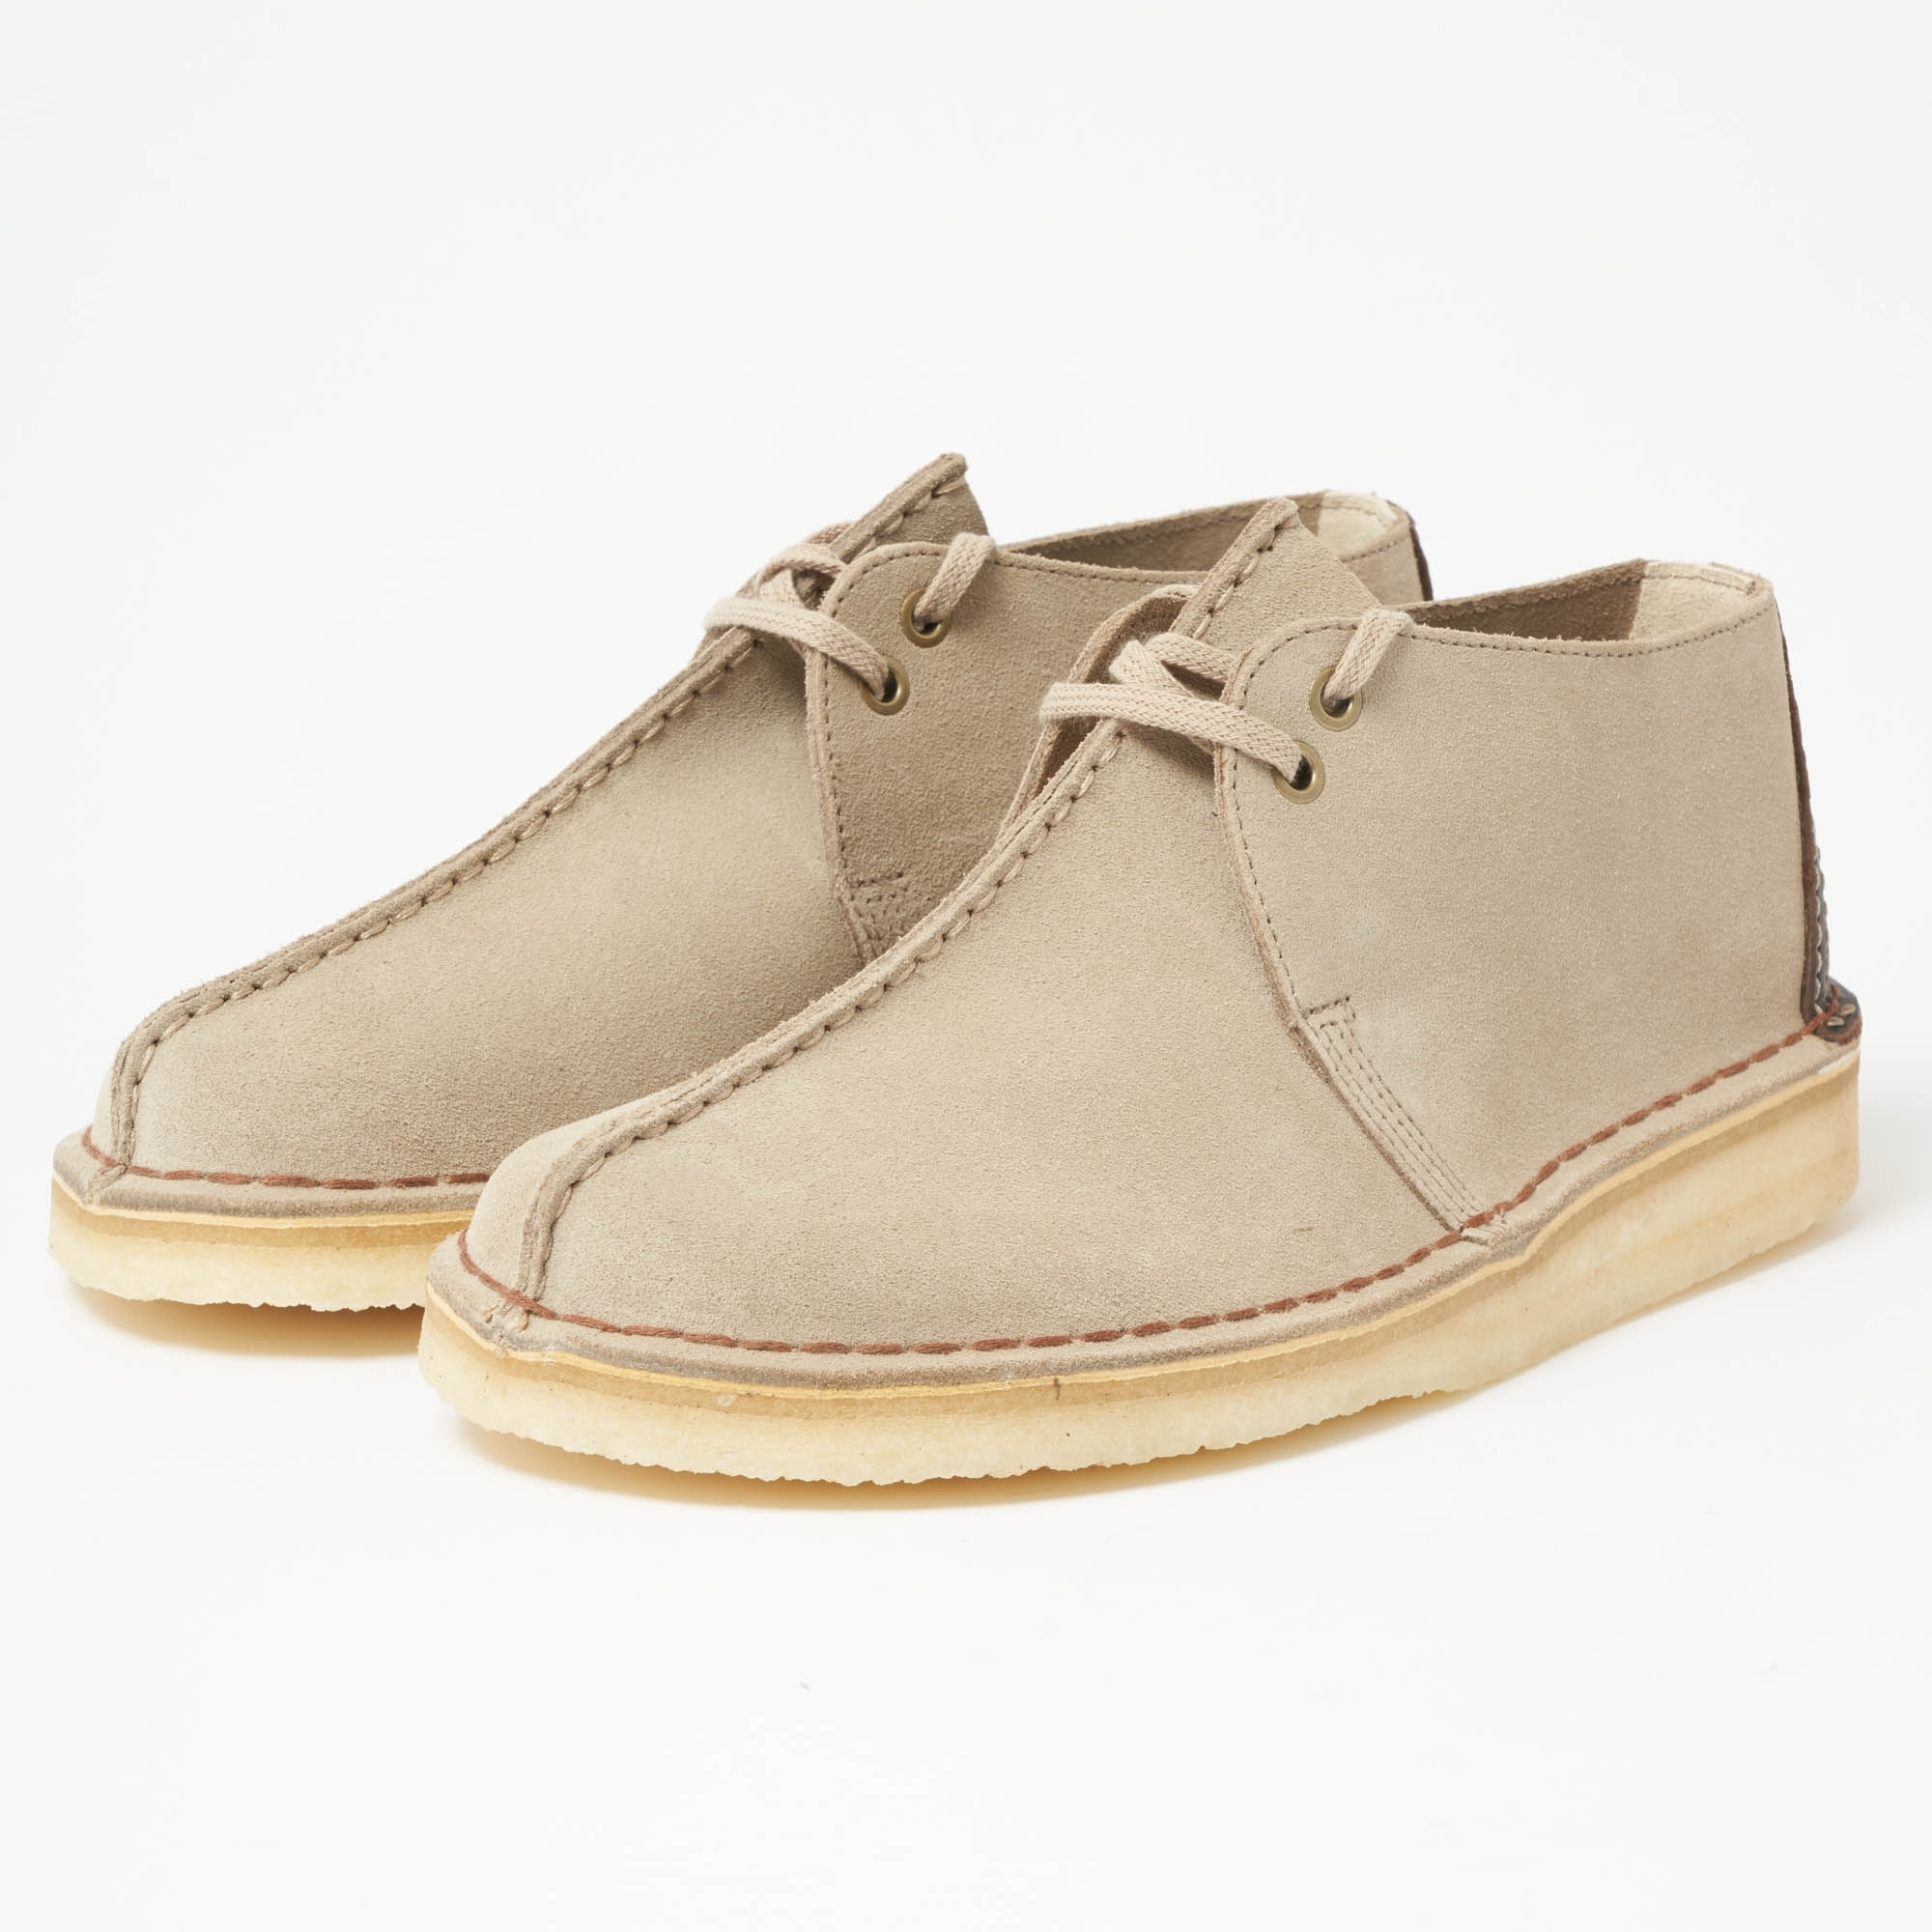 Clarks Originals Desert Trek Shoe Sand